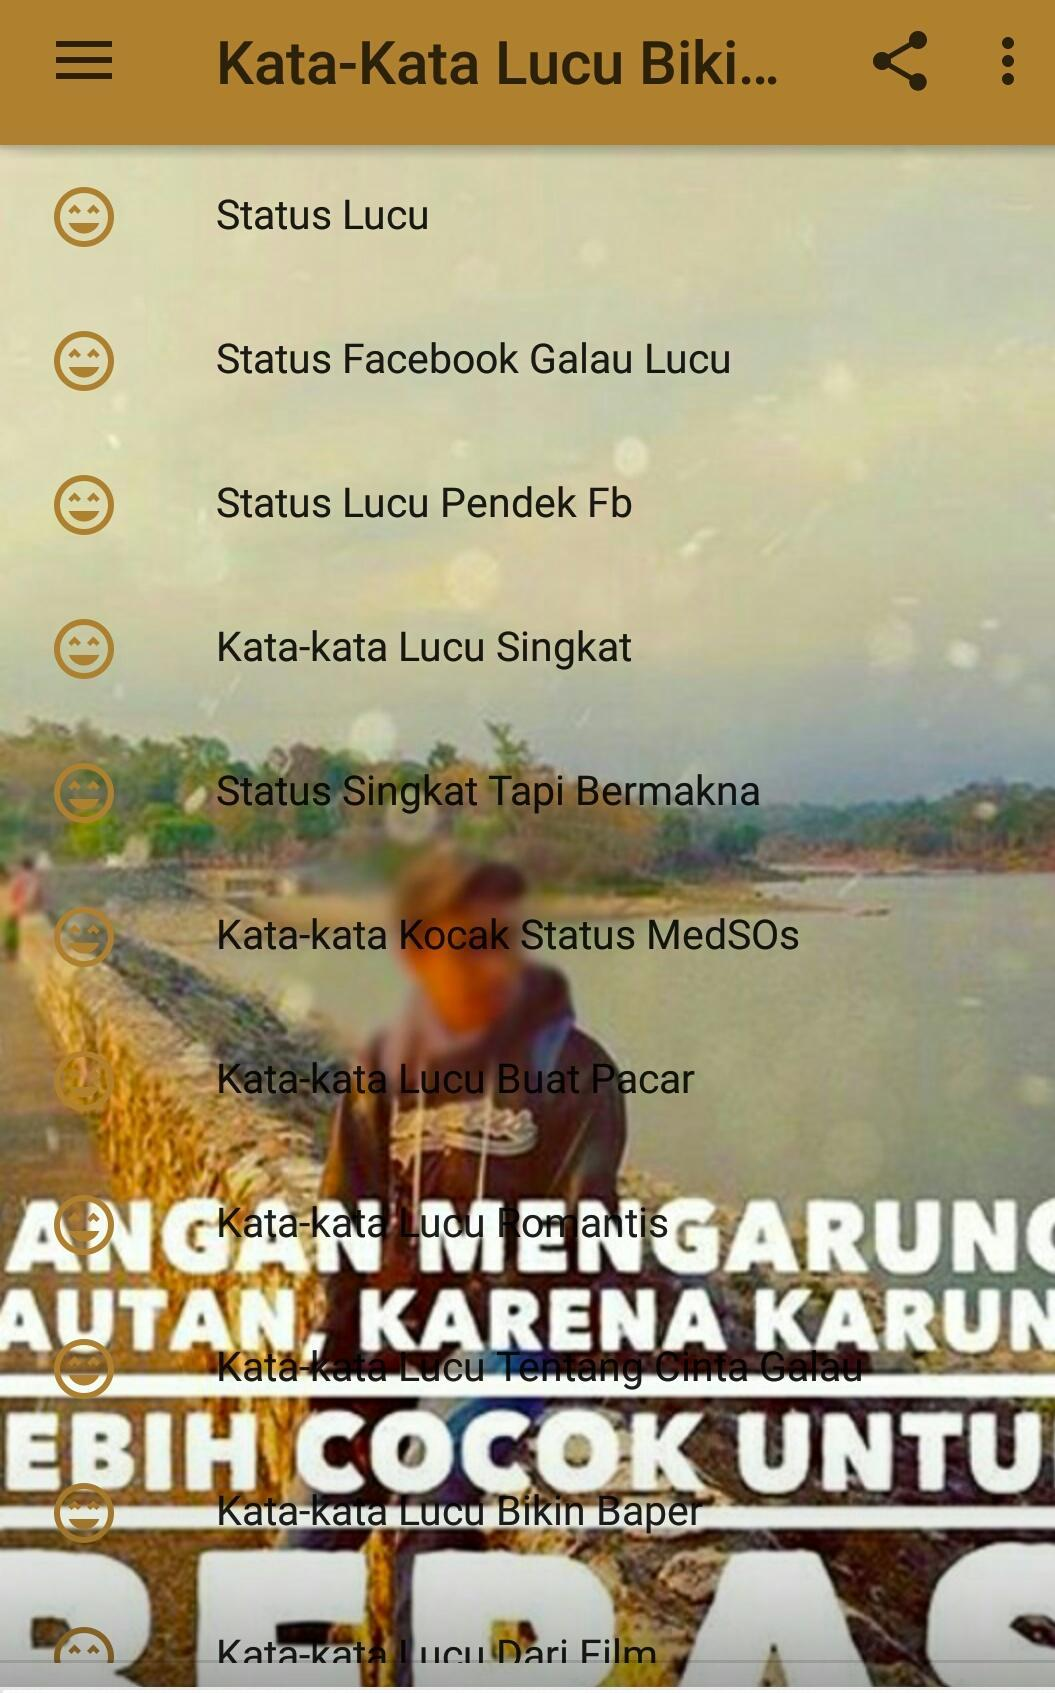 Kata Kata Status Lucu Bikin Ngakak For Android APK Download